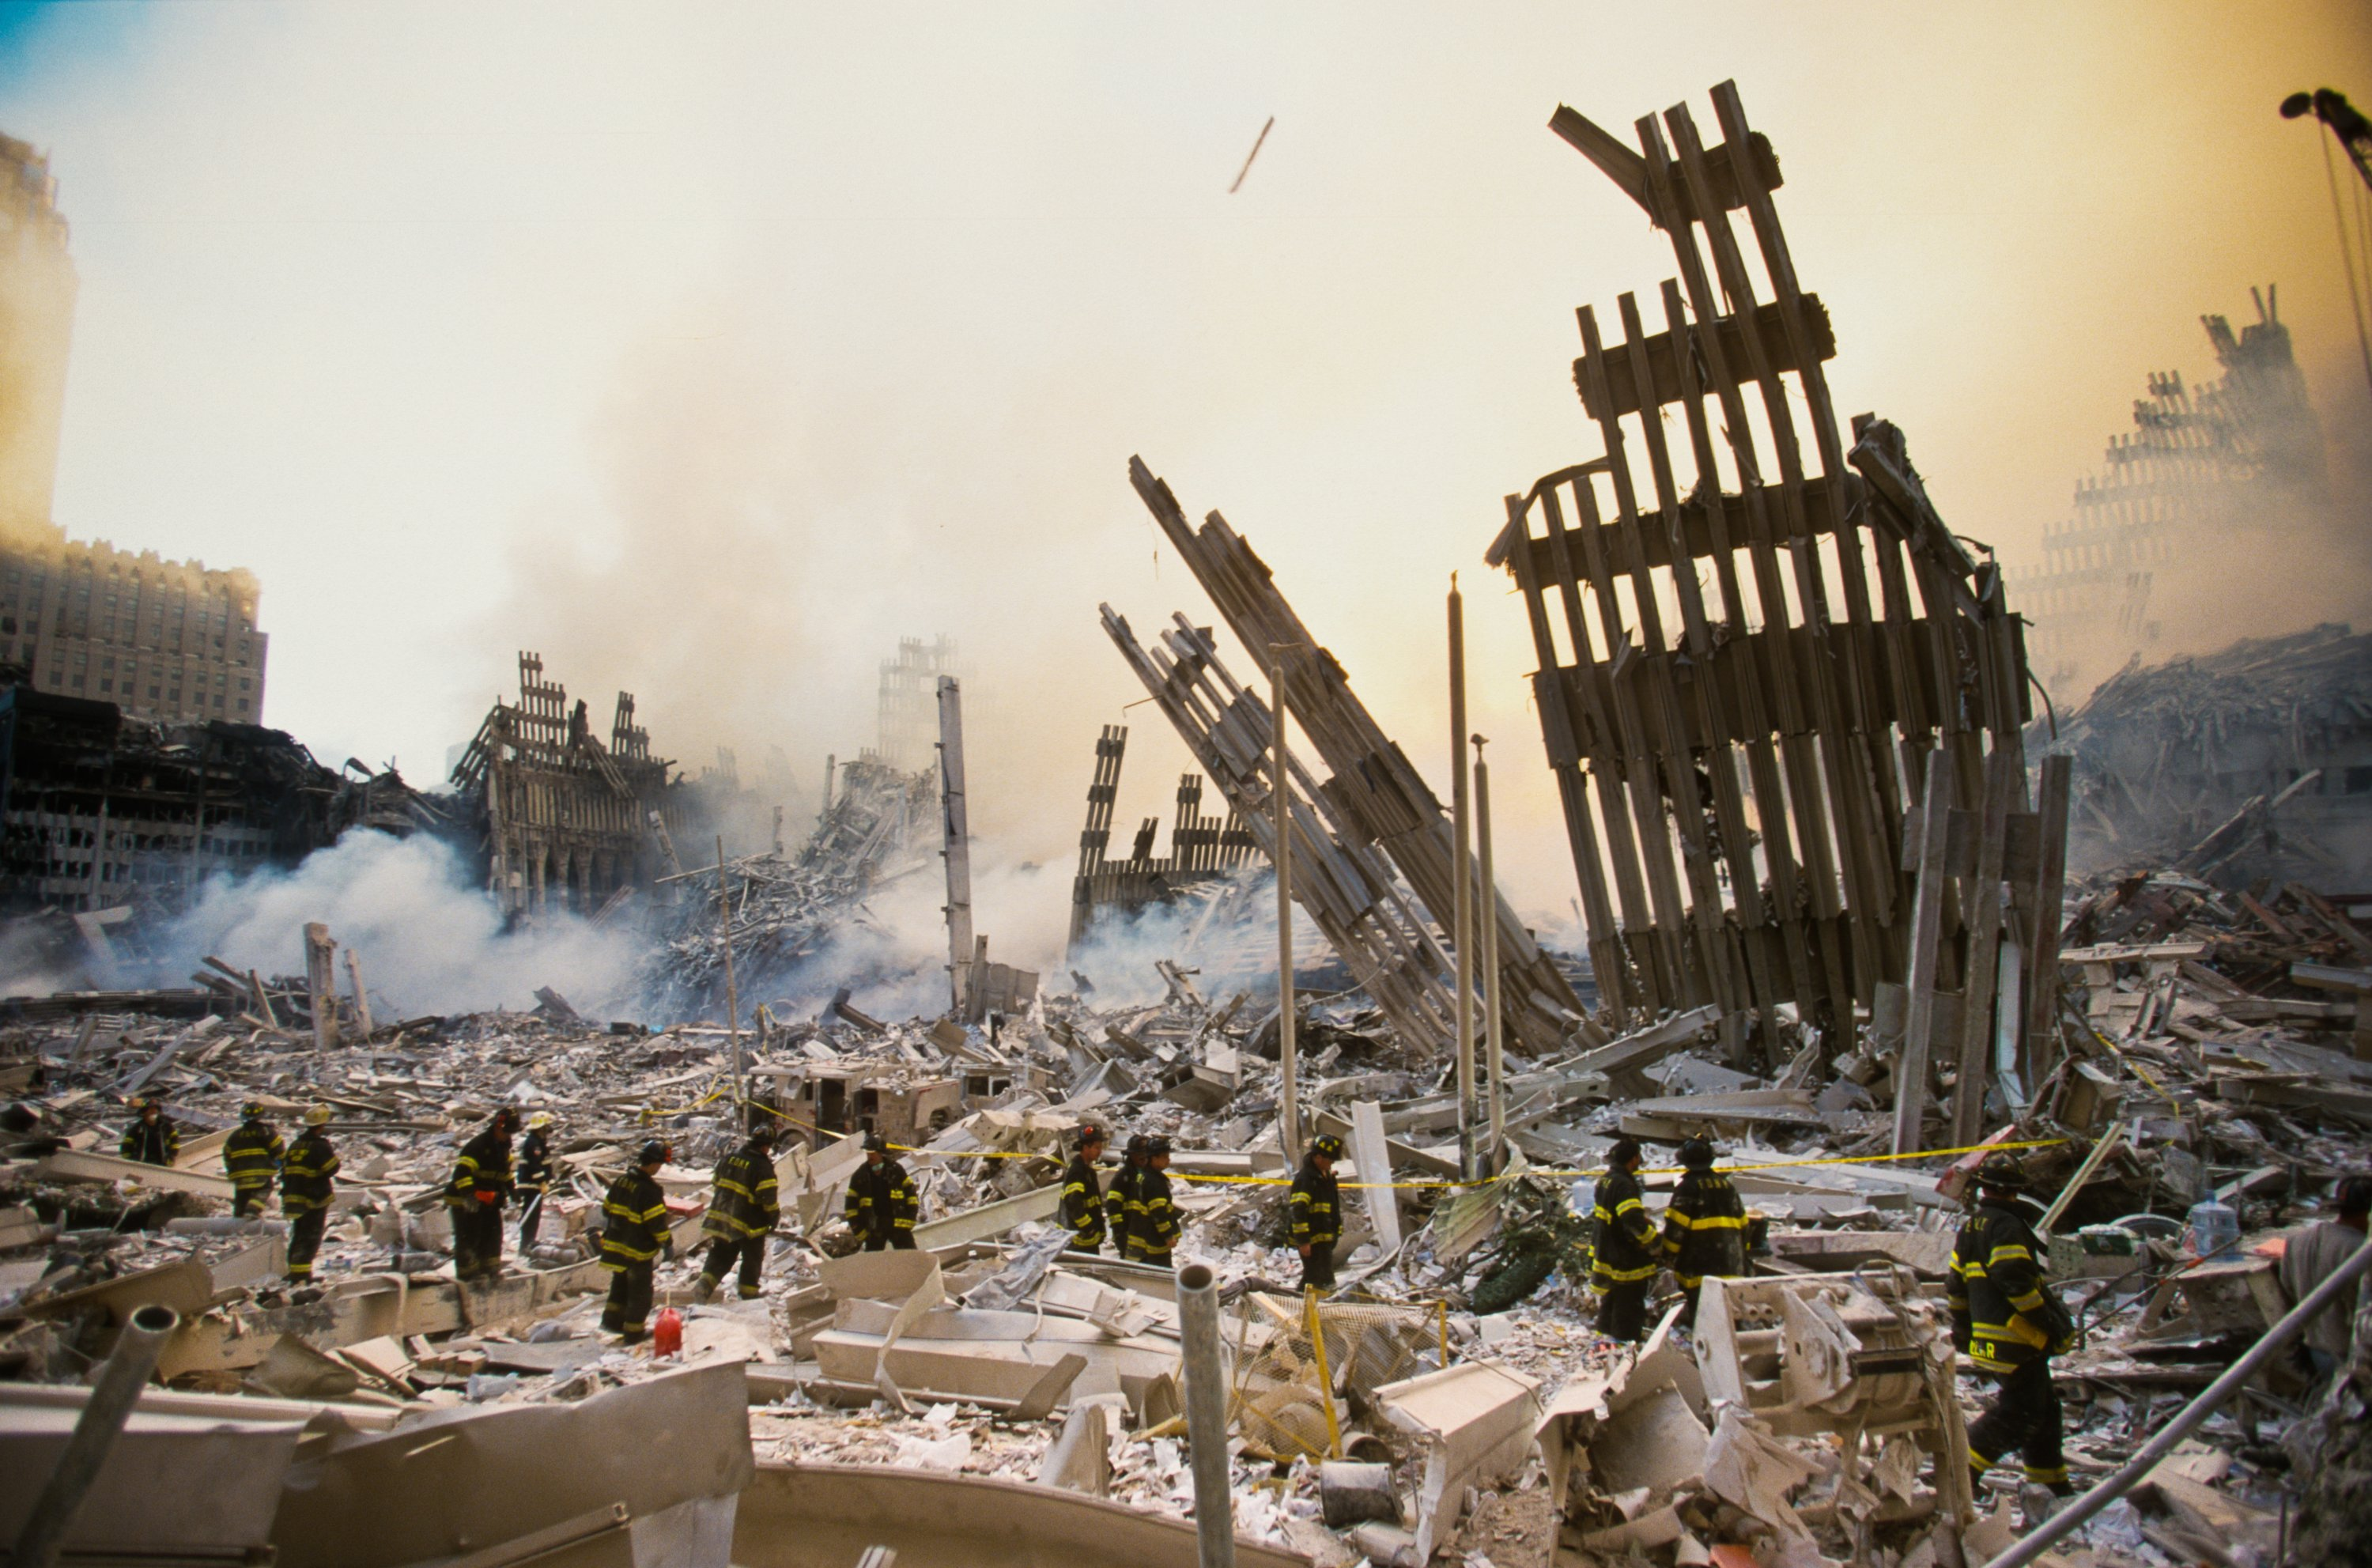 The rubble of the World Trade Center smoulders following a terrorist attack, in New York, U.S. Sept. 11, 2001. (Photo by Getty Images)